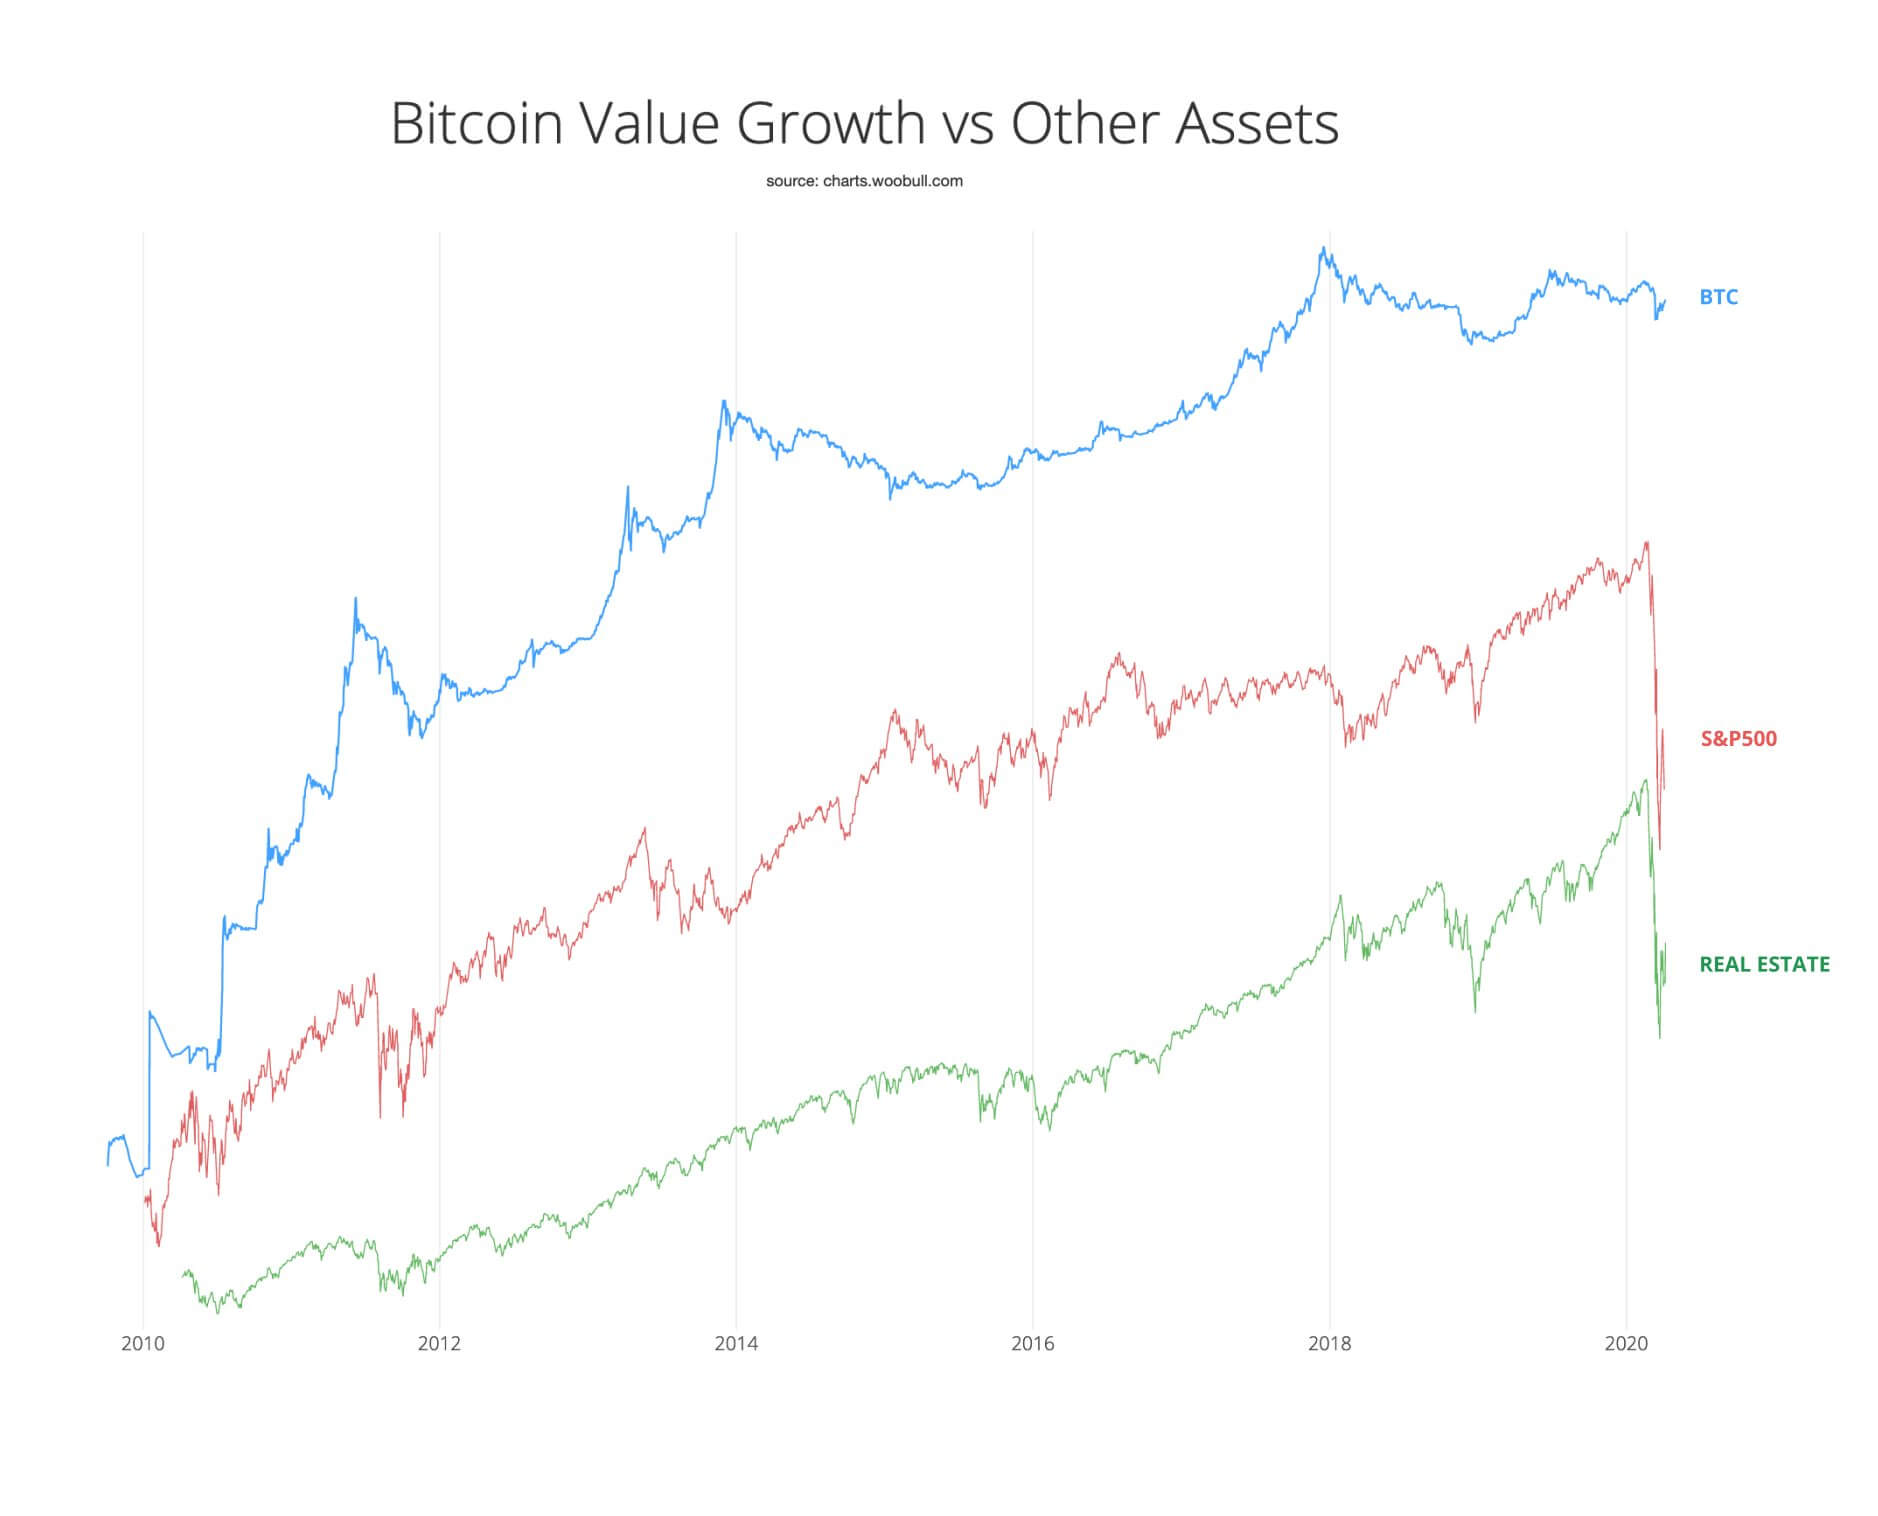 bitcoin compared to other assets